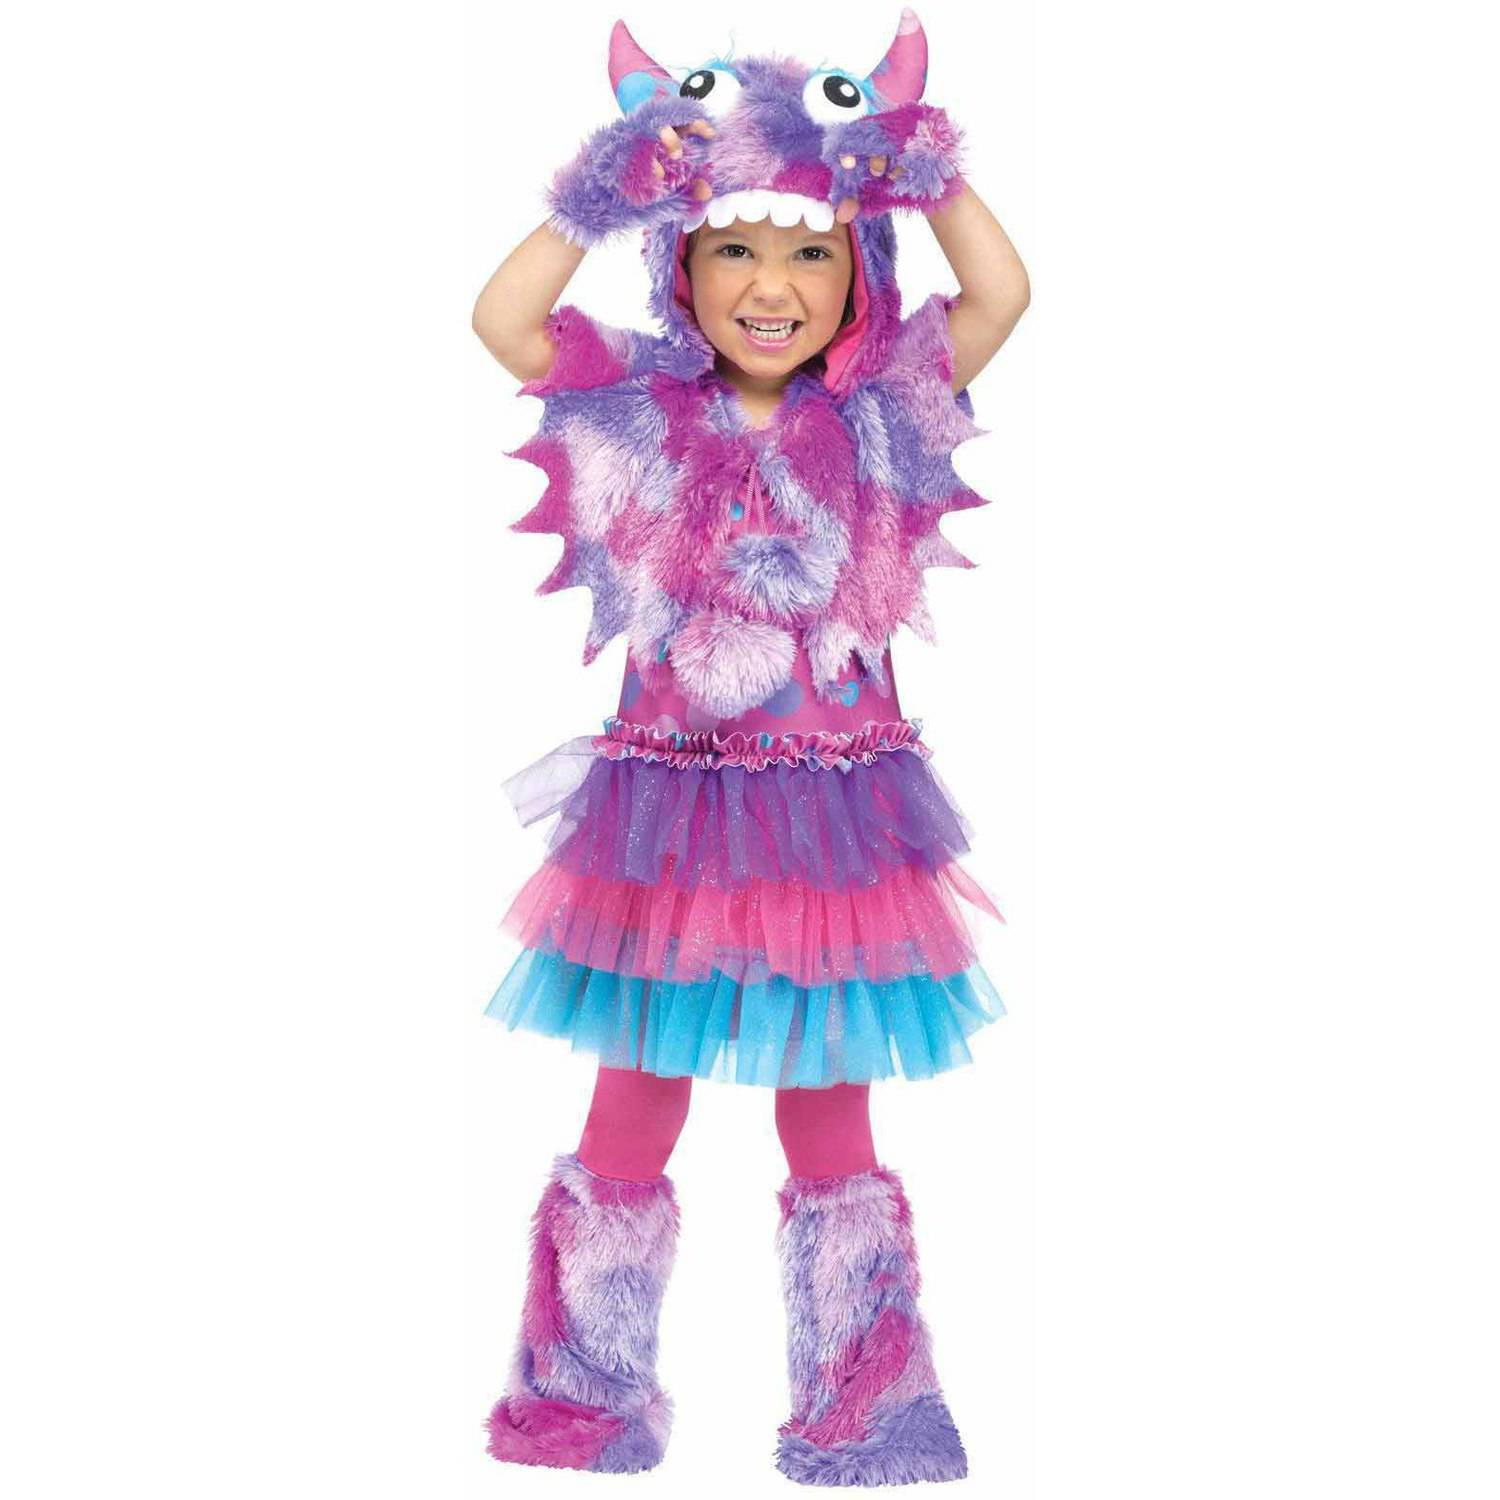 Polka Dot Monster Girls' Toddler Halloween Costume 2T-3T